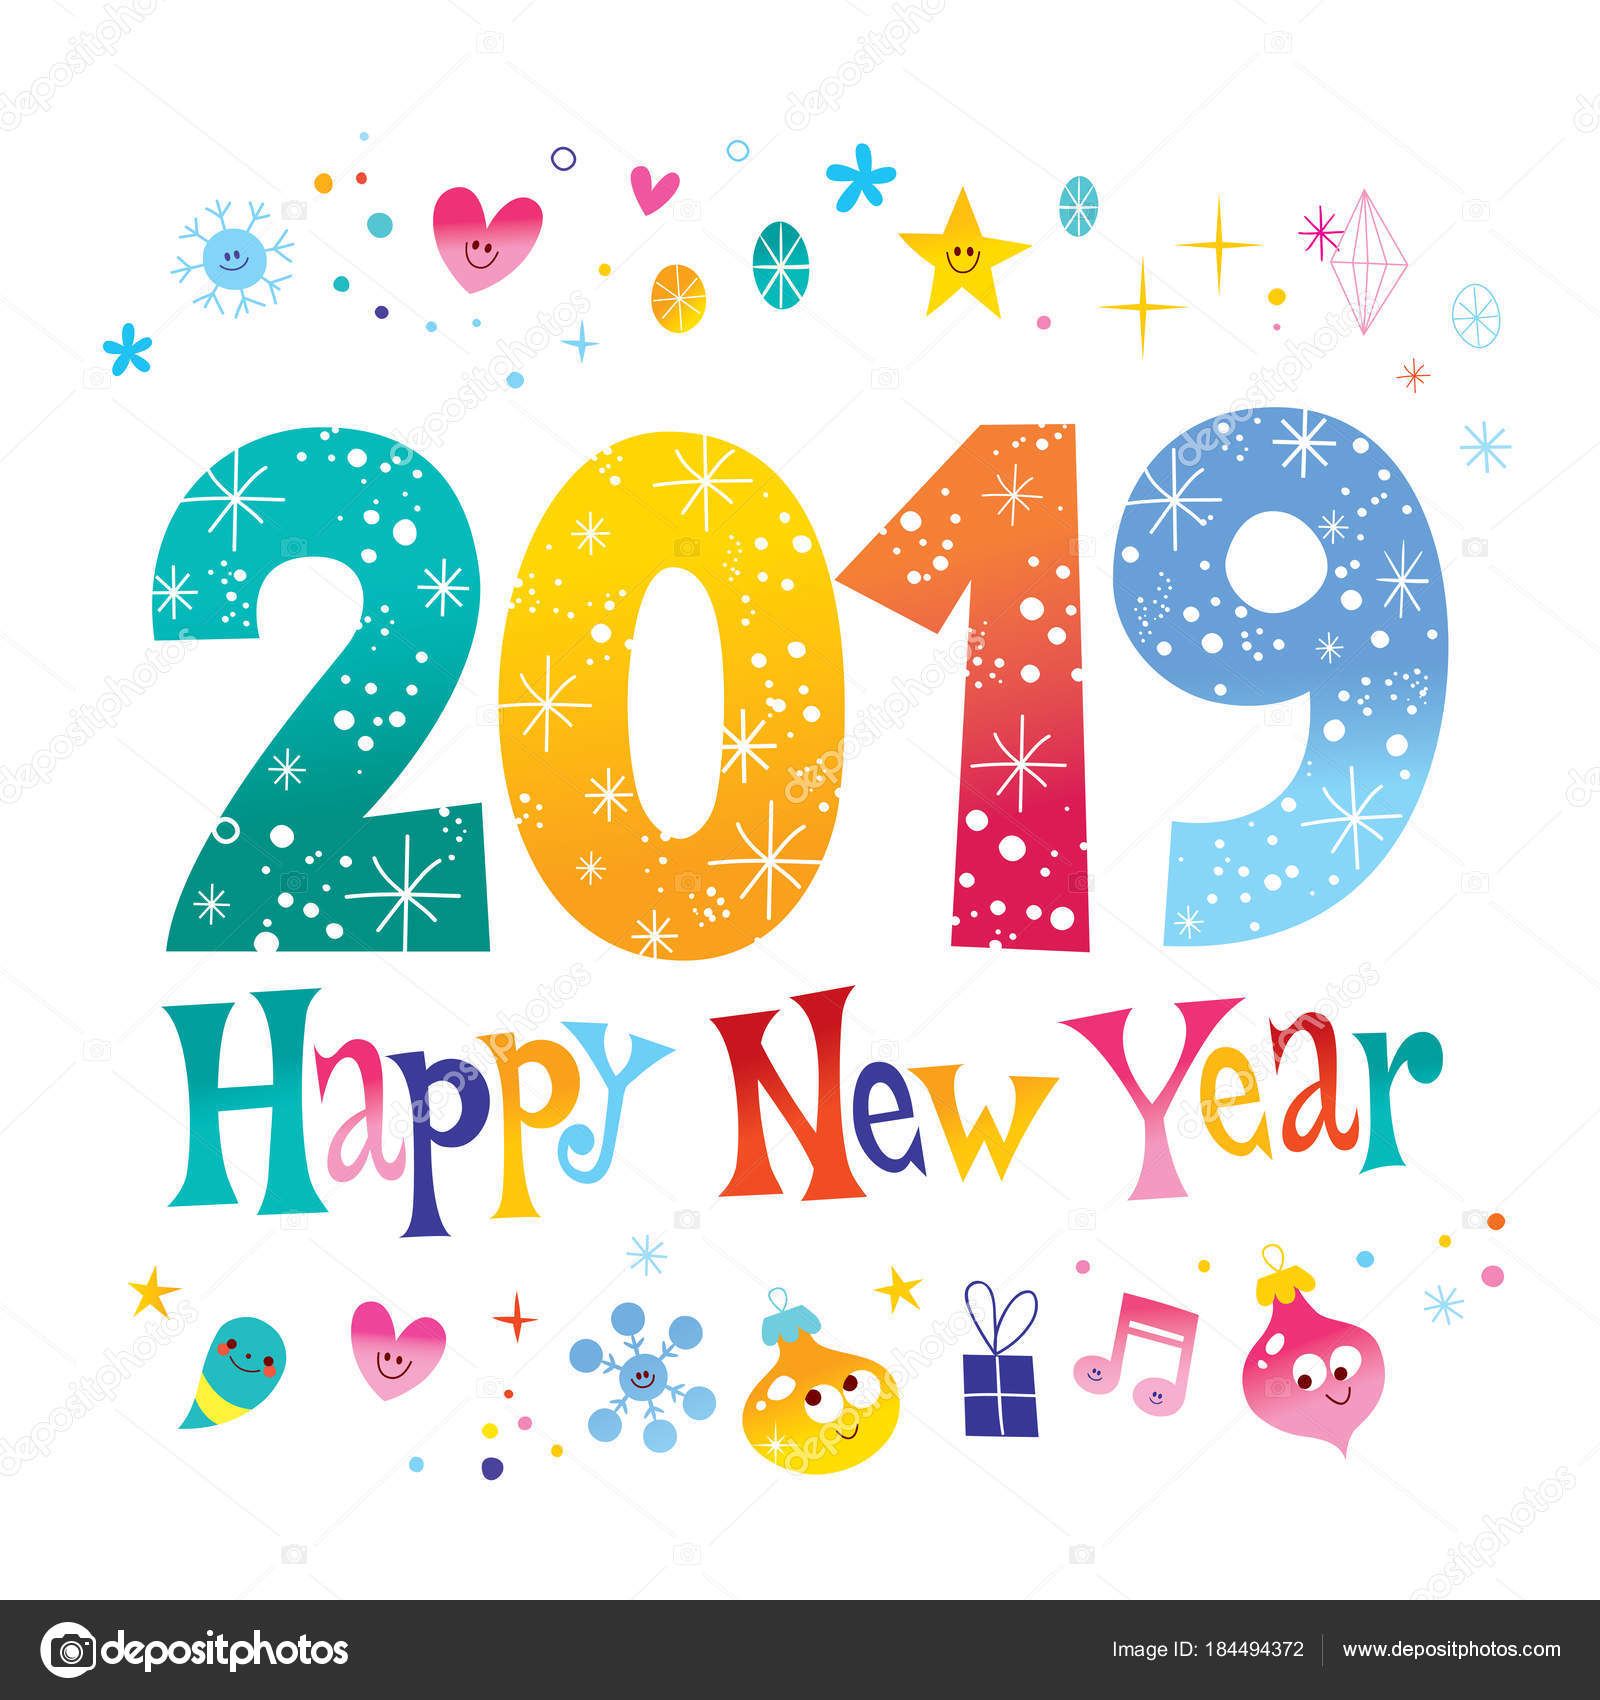 carte voeux nouvel deux mille dix neuf 2019 image clipart happy new year 2019 transparent clipart happy new year graphics 2017